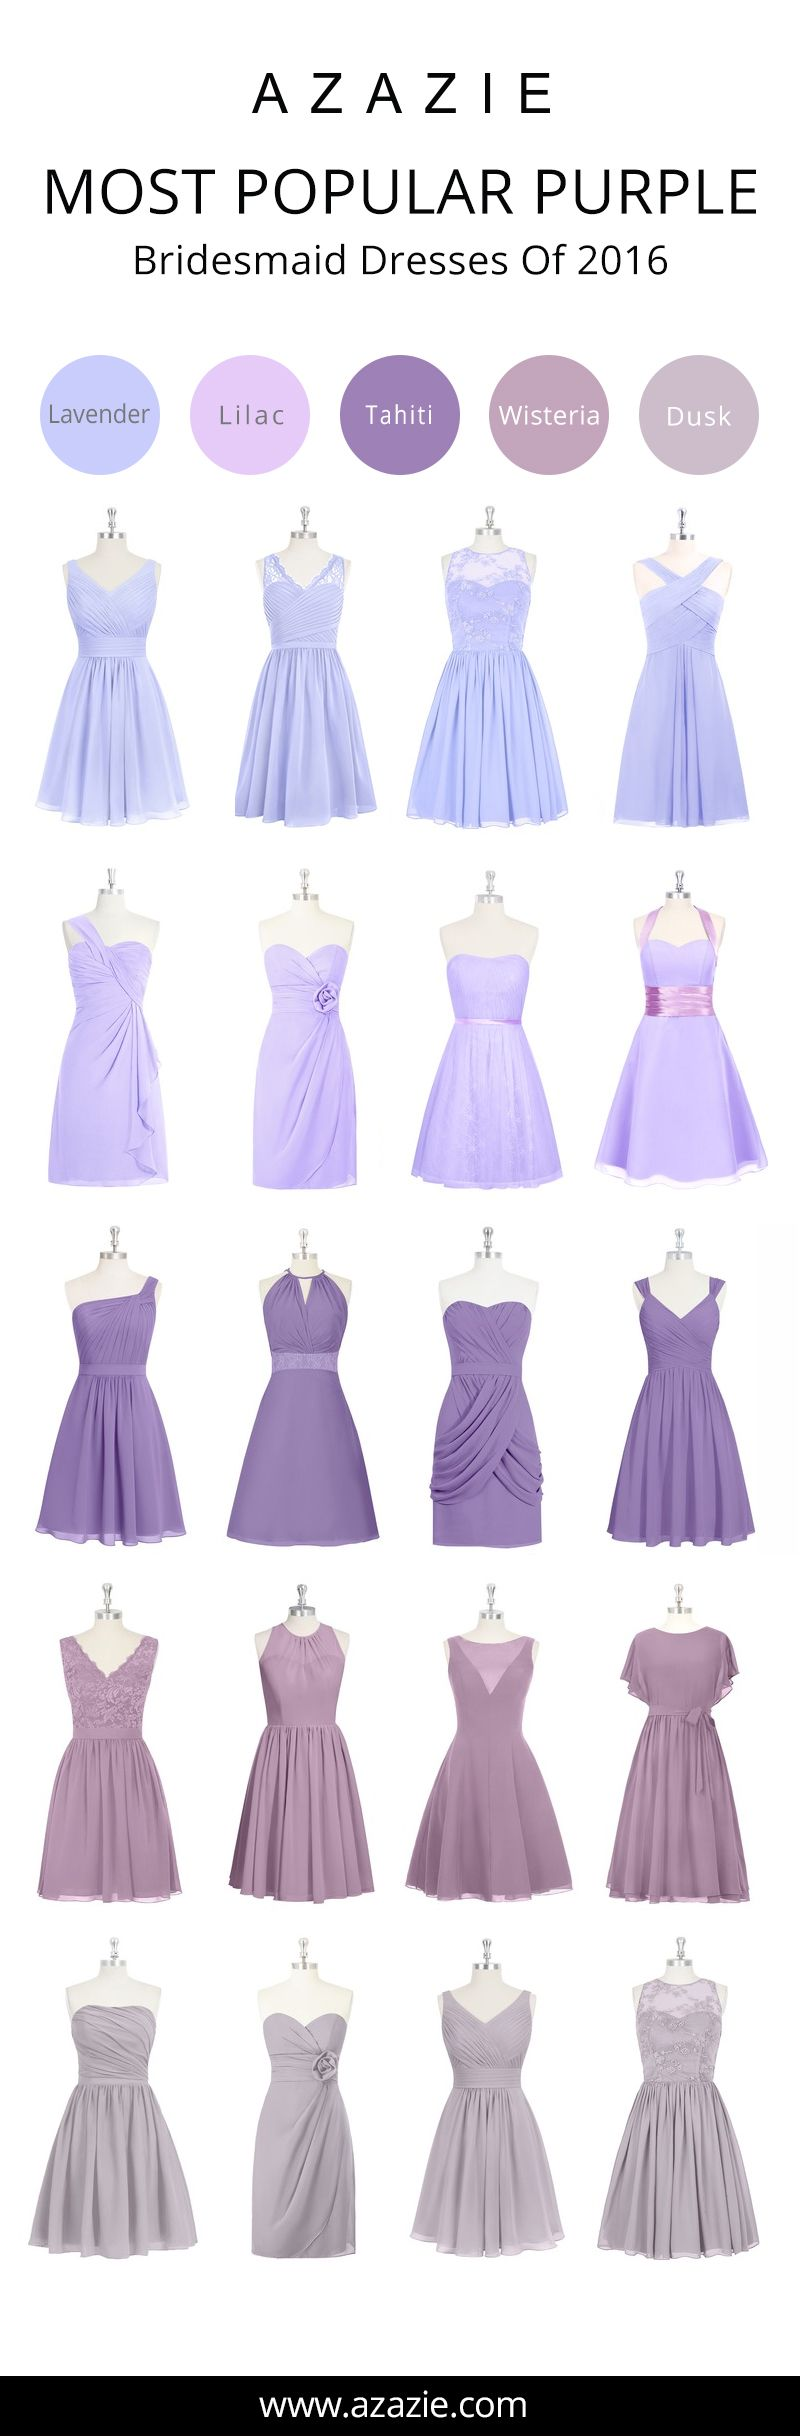 Azazie is the online destination for special occasion dresses our